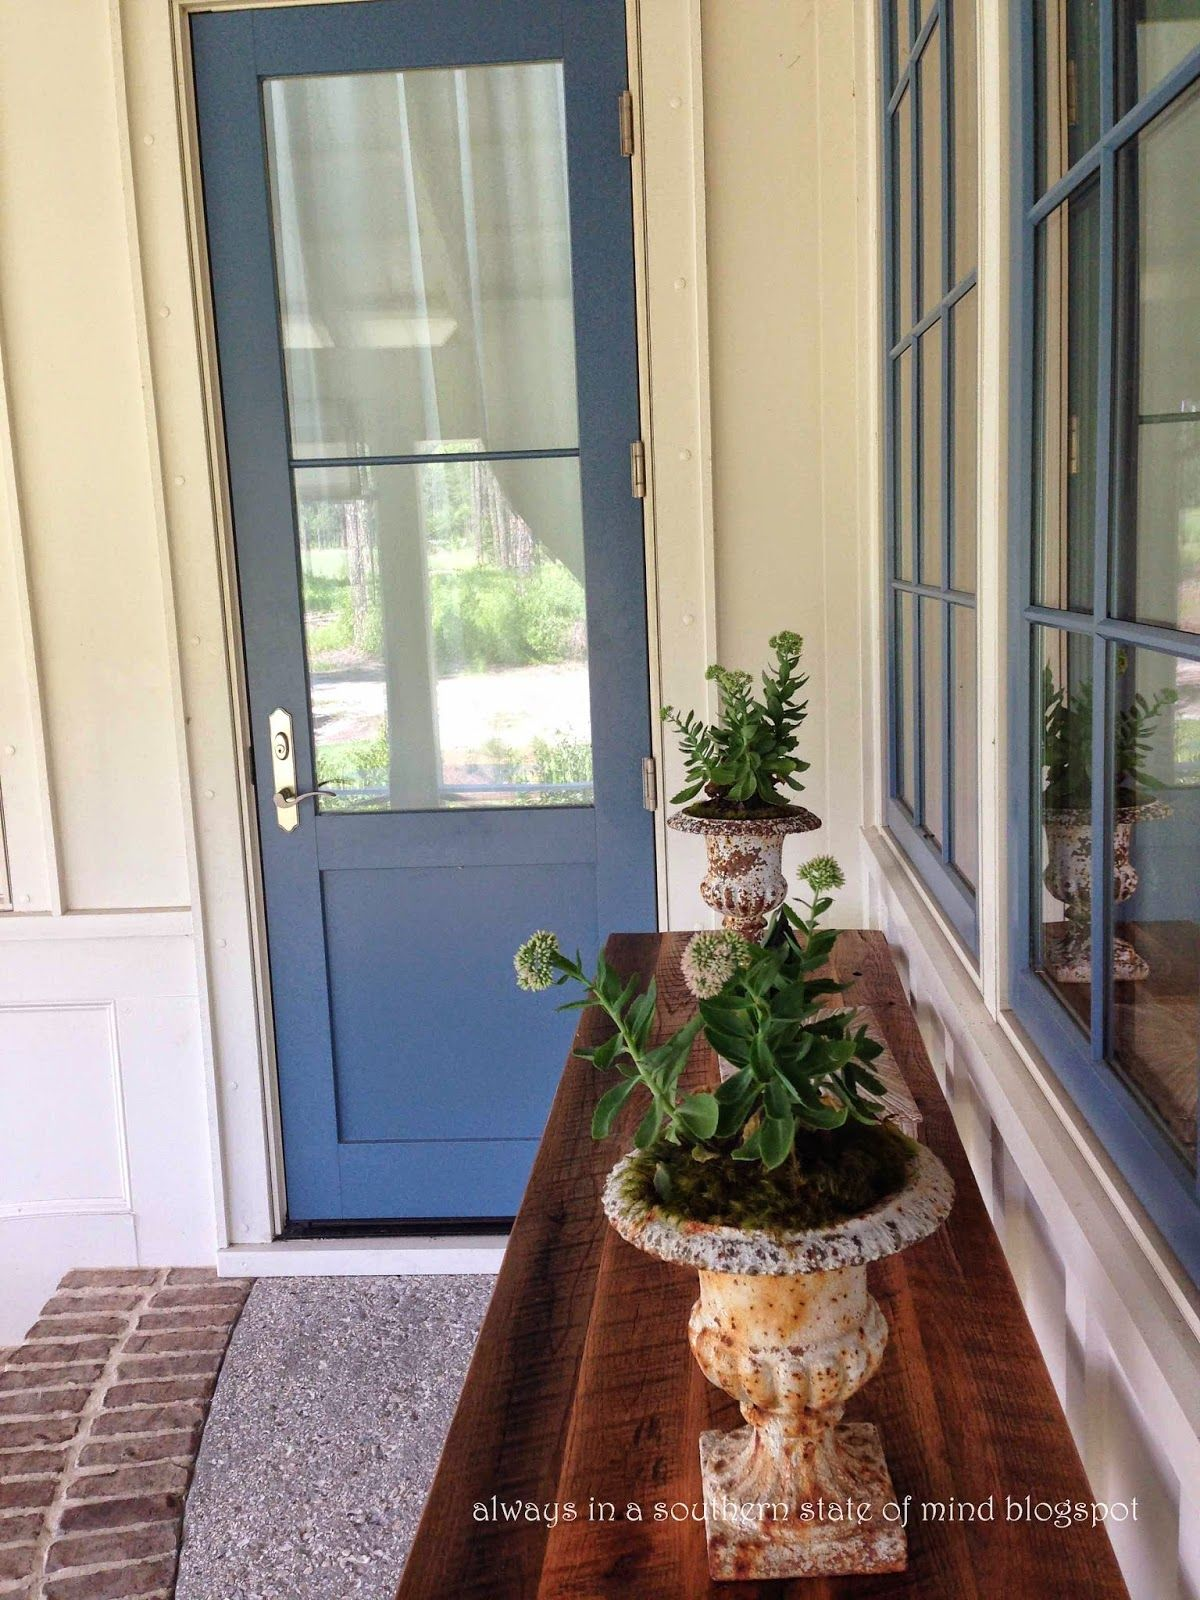 Outside window design ideas  always in a southern state of mind letus look outside at the